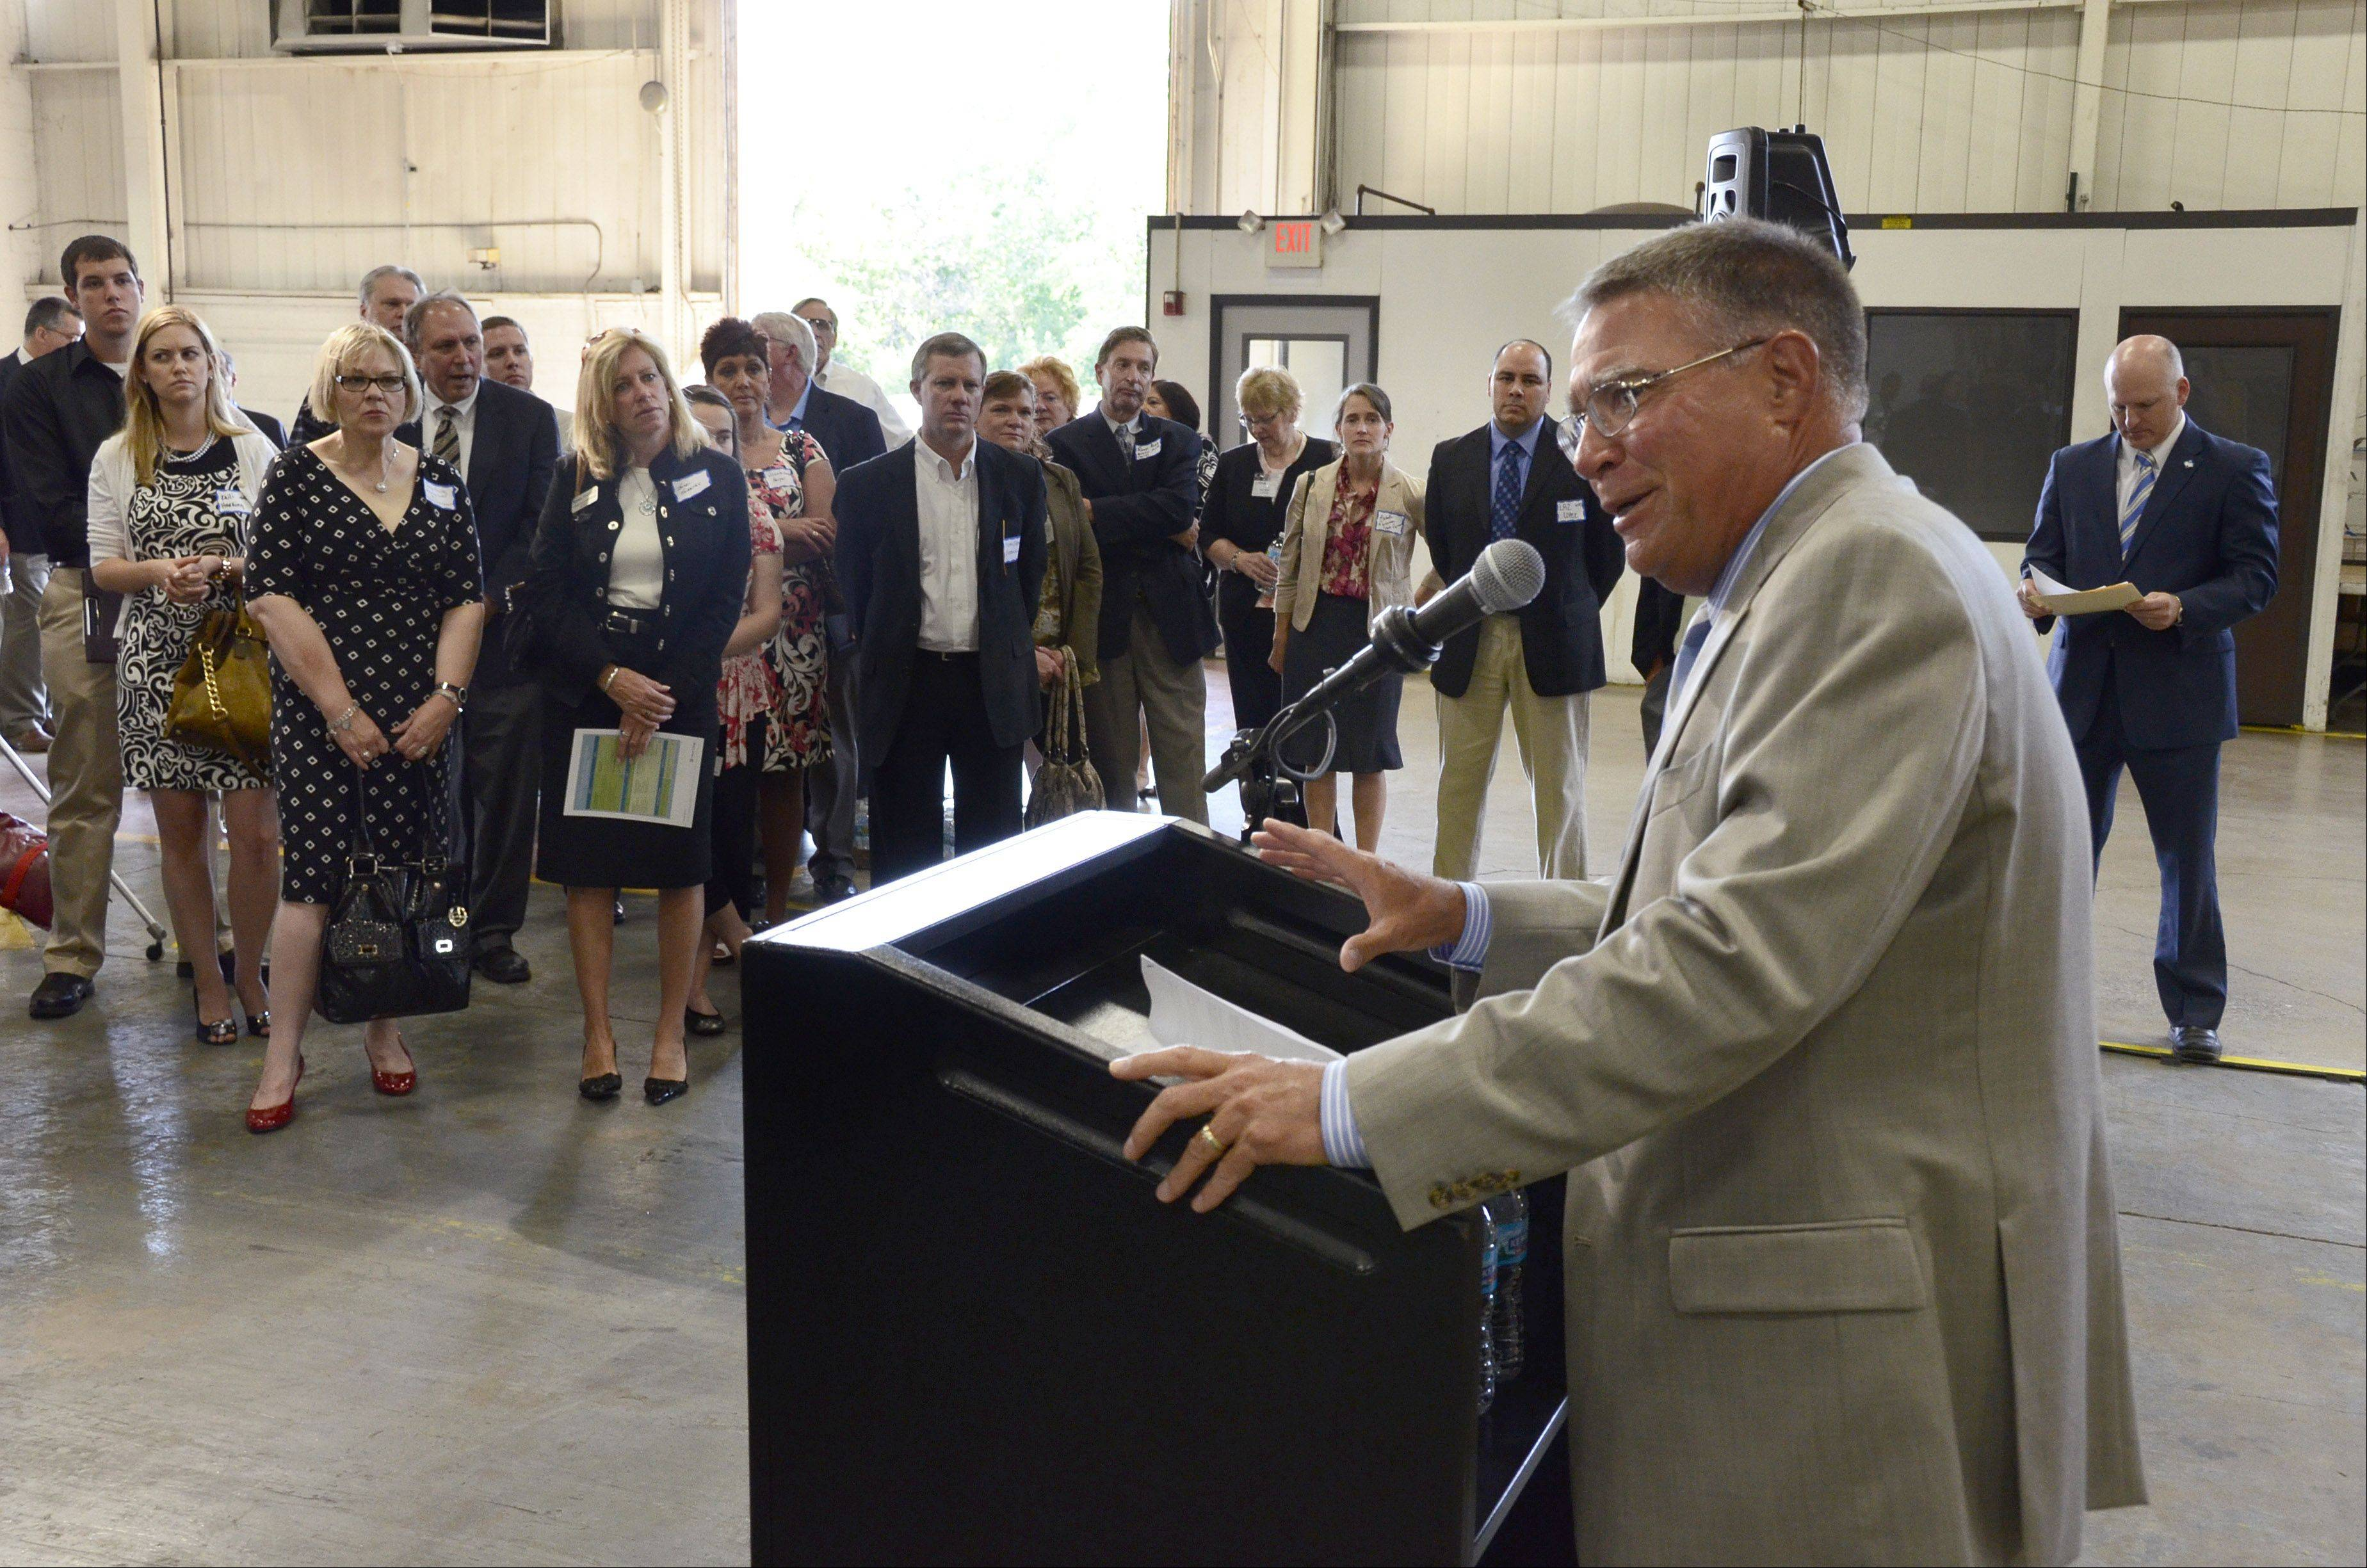 Harper College President Ken Ender, speaking Wednesday at a news conference at Acme Industries in Elk Grove Village, formally announces the partnership between the Palatine community college and more than 50 manufacturers creating a new Advanced Manufacturing program.